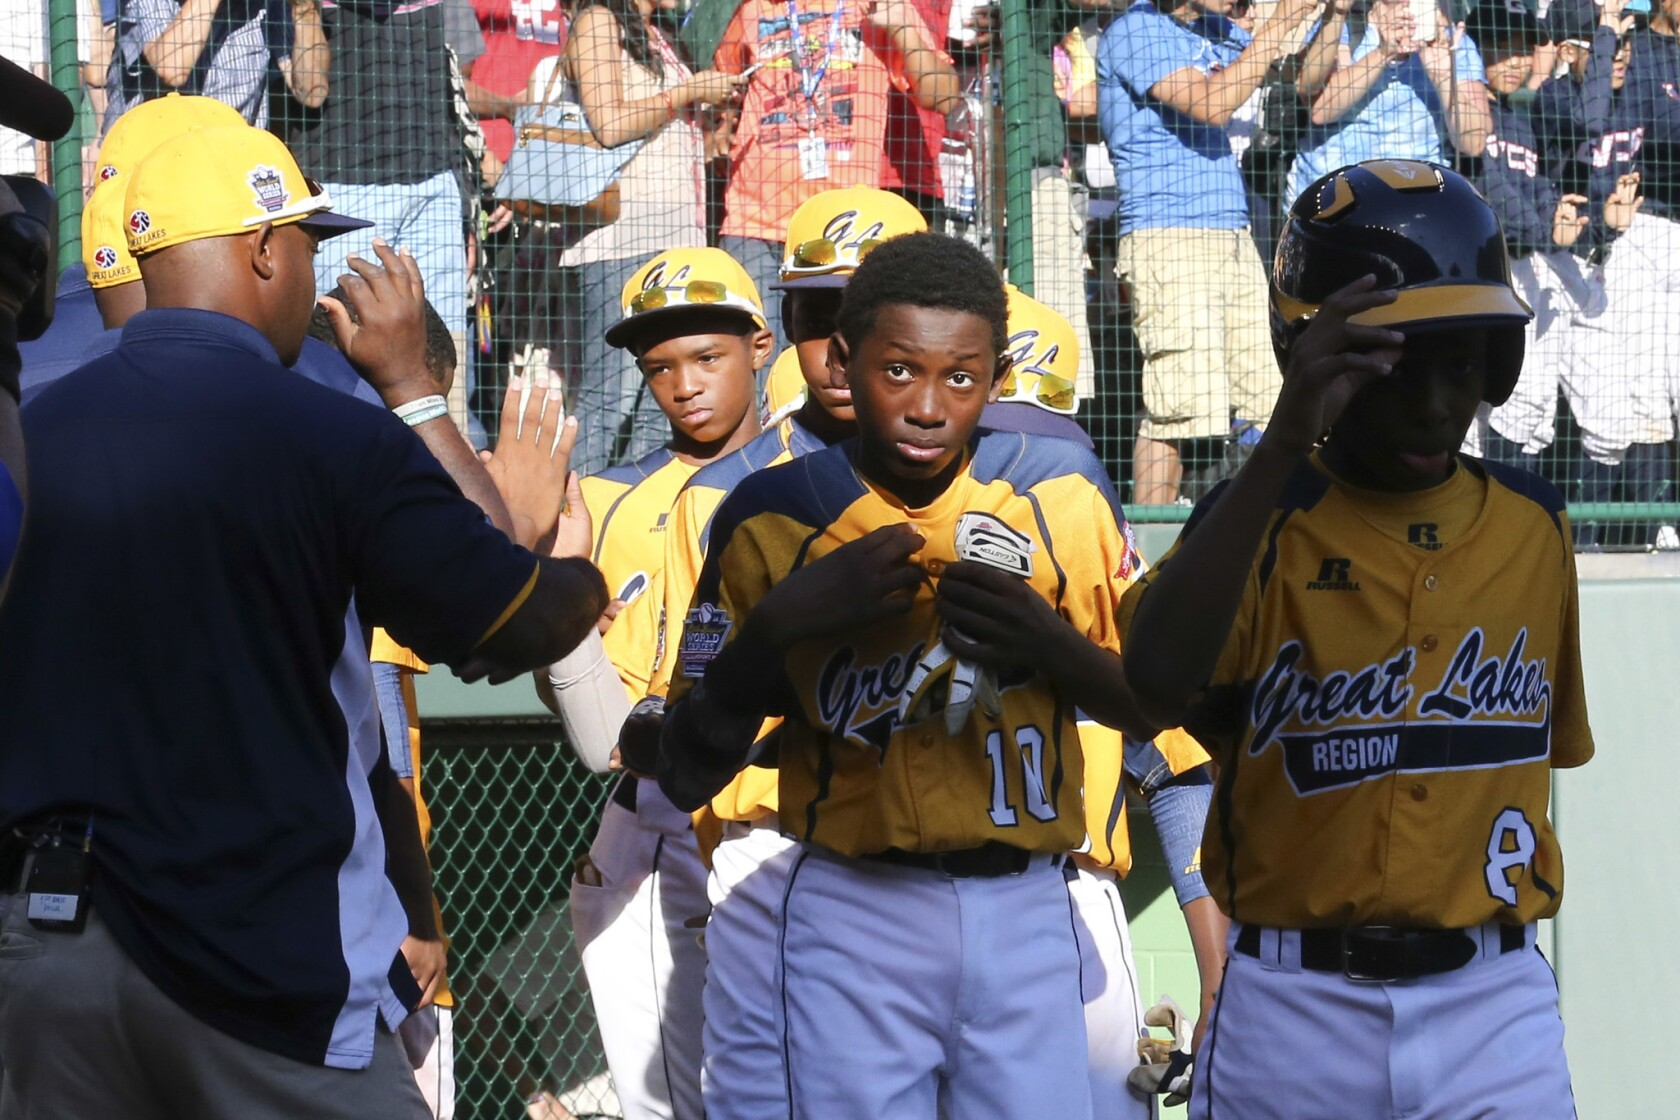 Jackie Robinson West parents grateful for support - Los